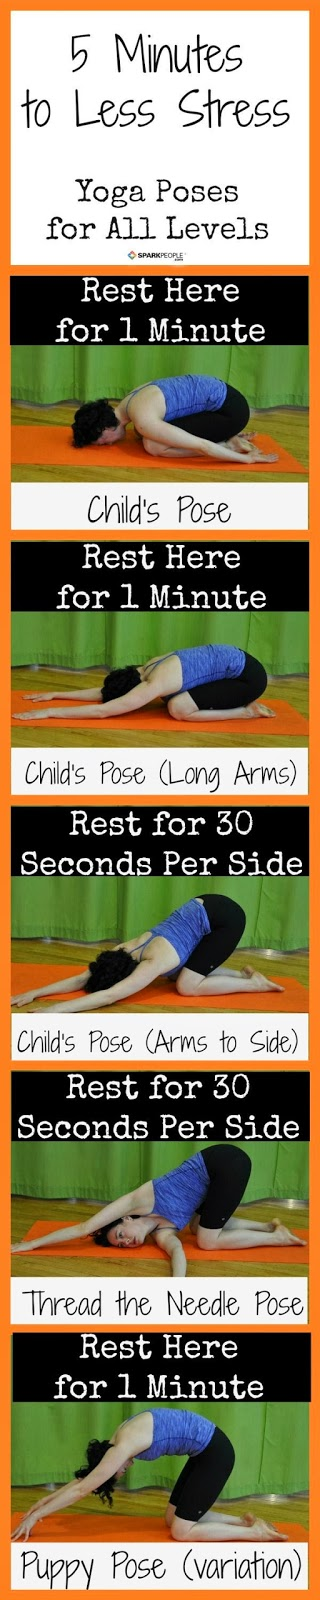 Yoga poses for all levels